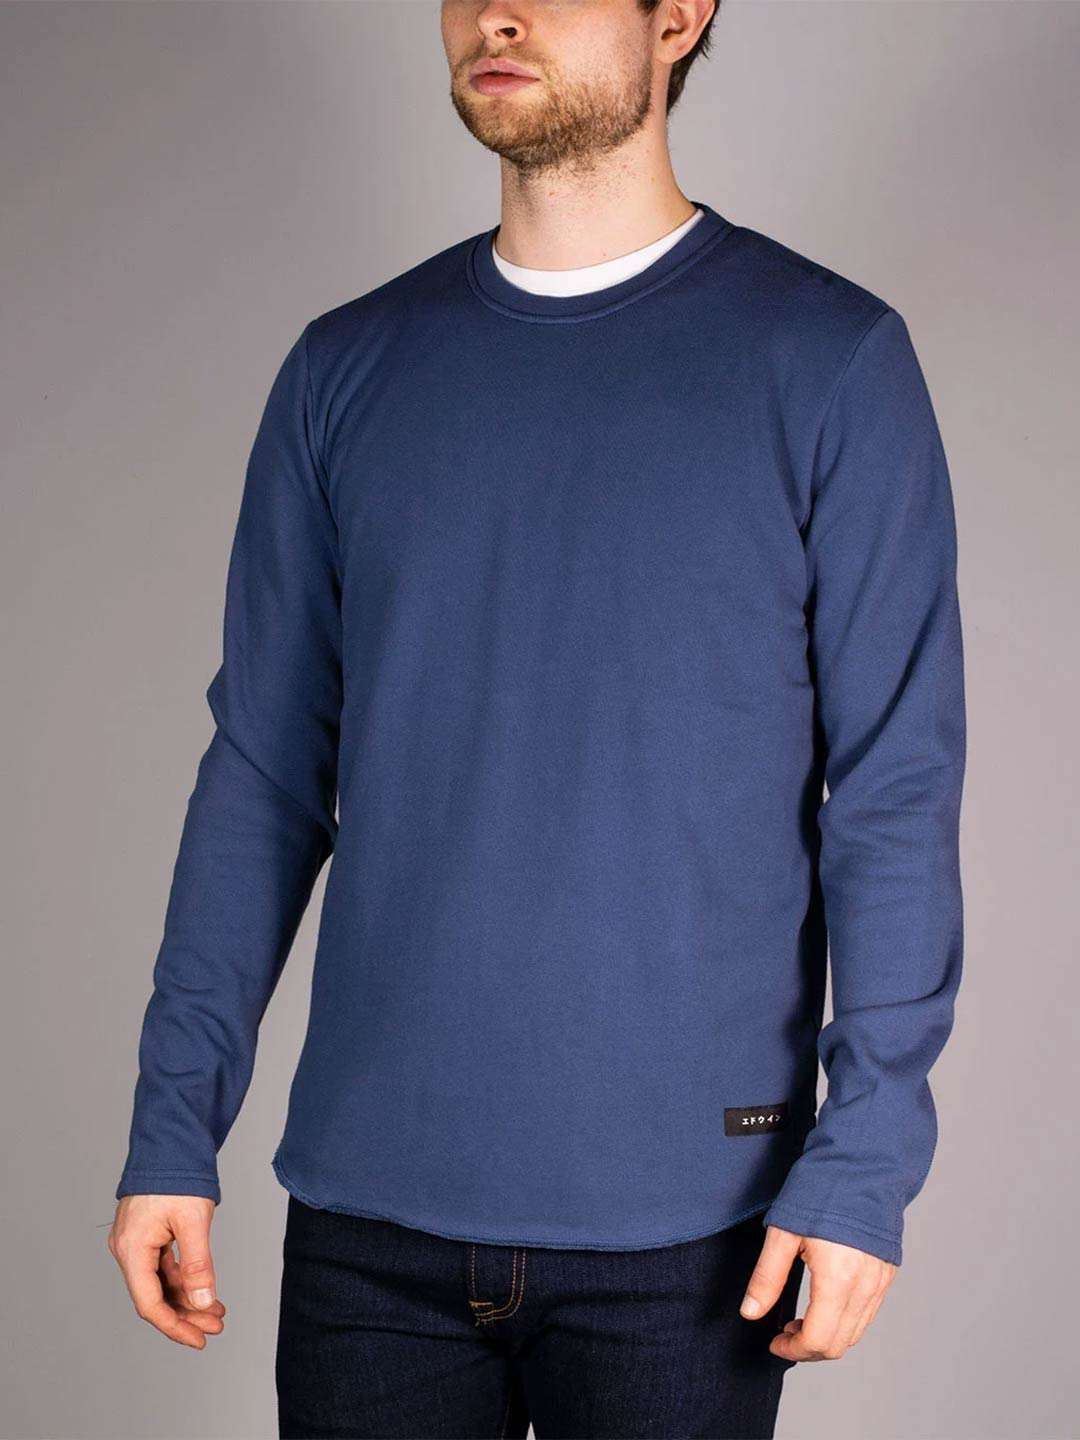 EDWIN Terry Long Sleeved Tee - Revolver Menswear Bawtry